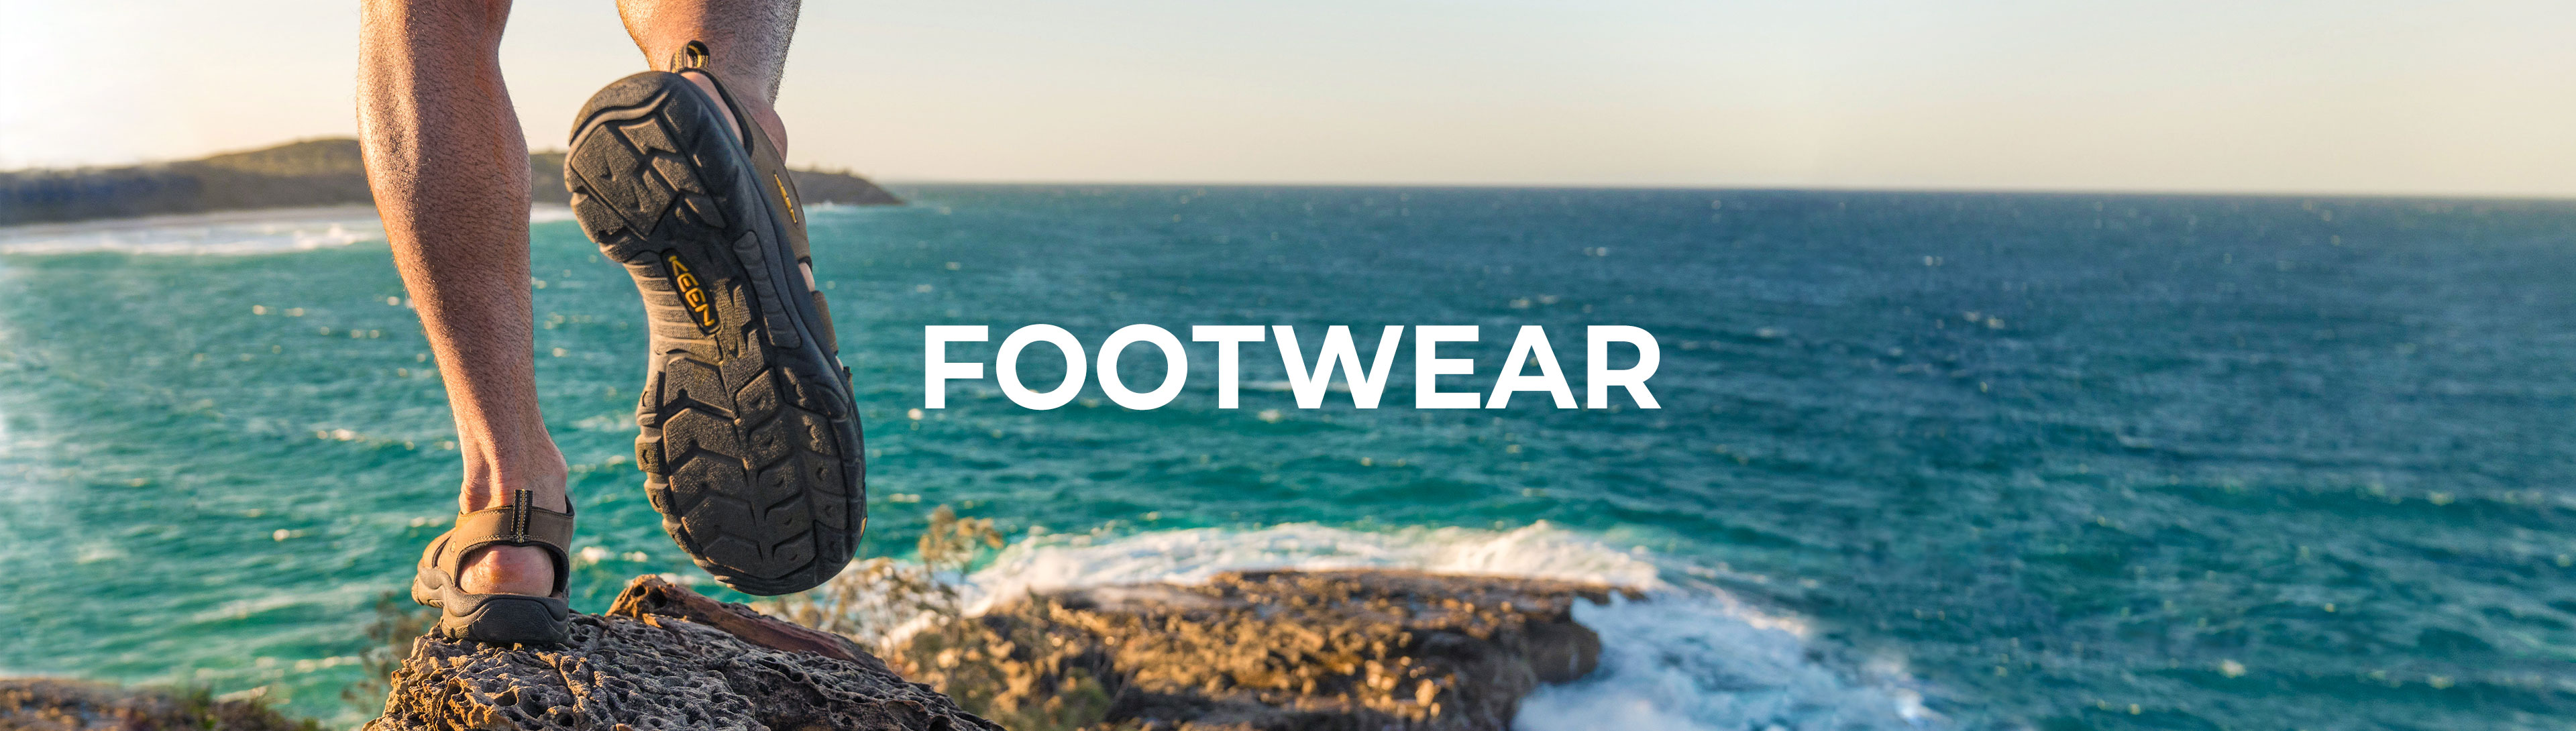 Shop Our Footwear Range